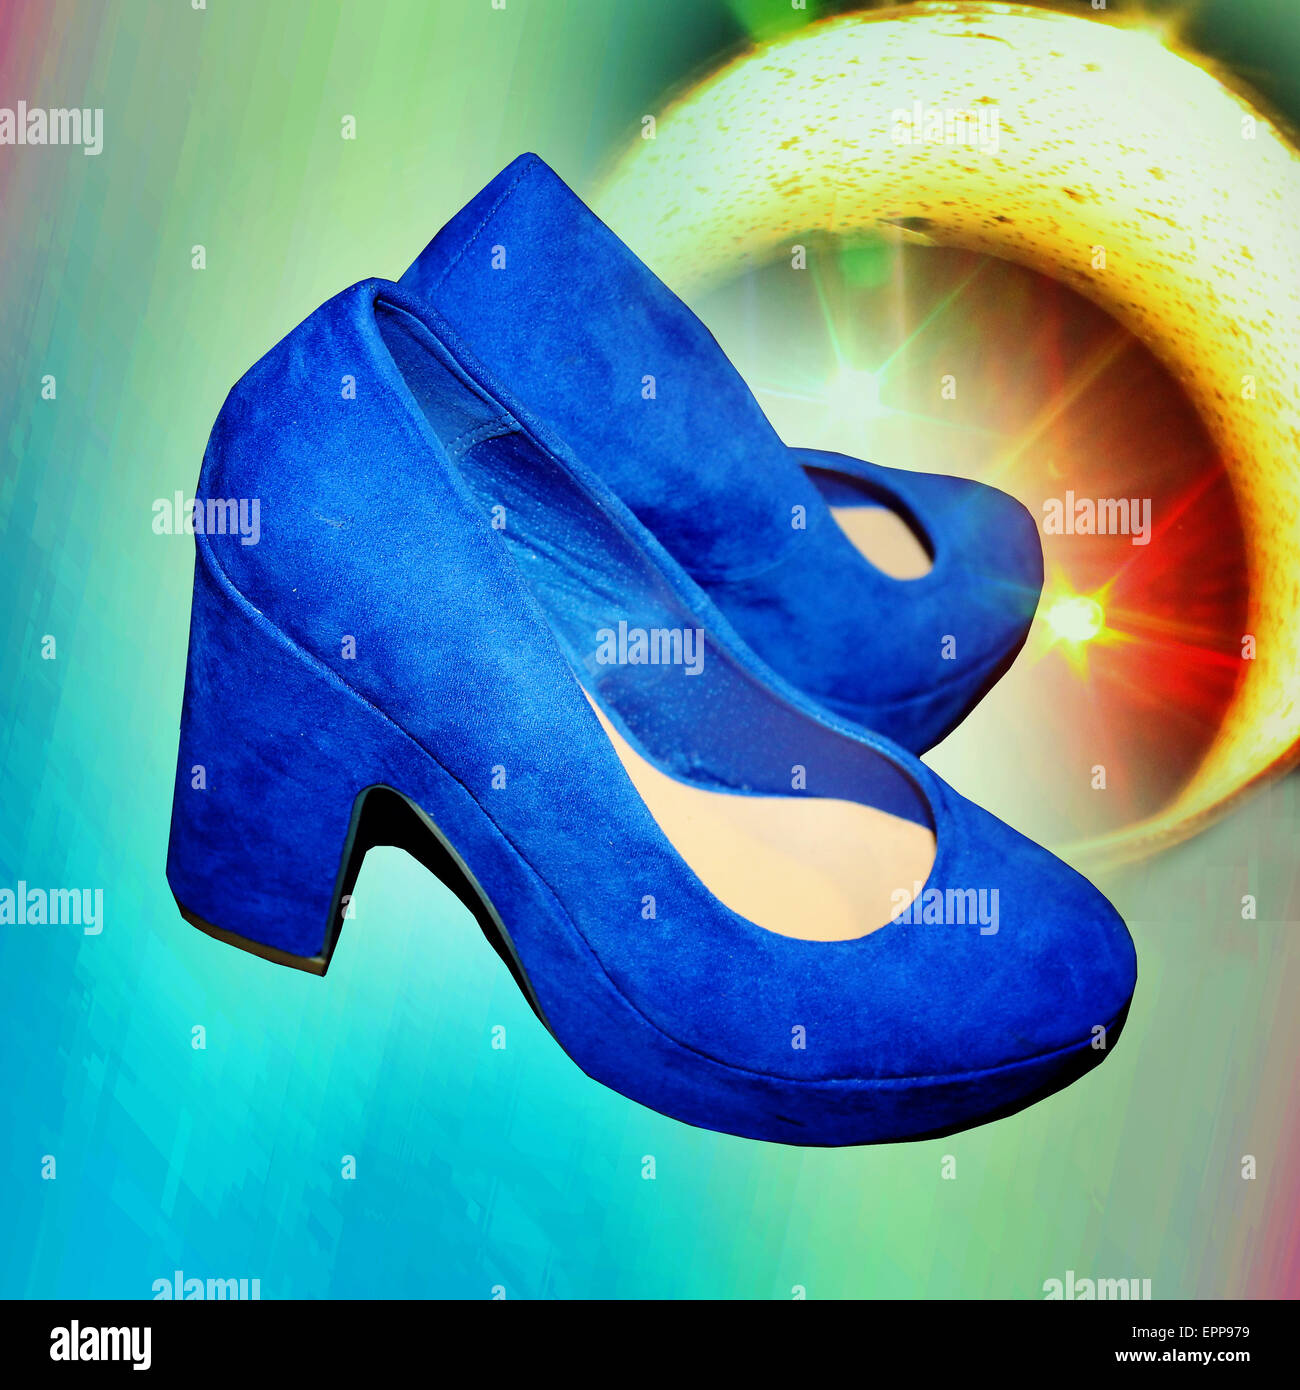 a3366c50ed5 Stiletto Heels Stock Photos & Stiletto Heels Stock Images - Alamy